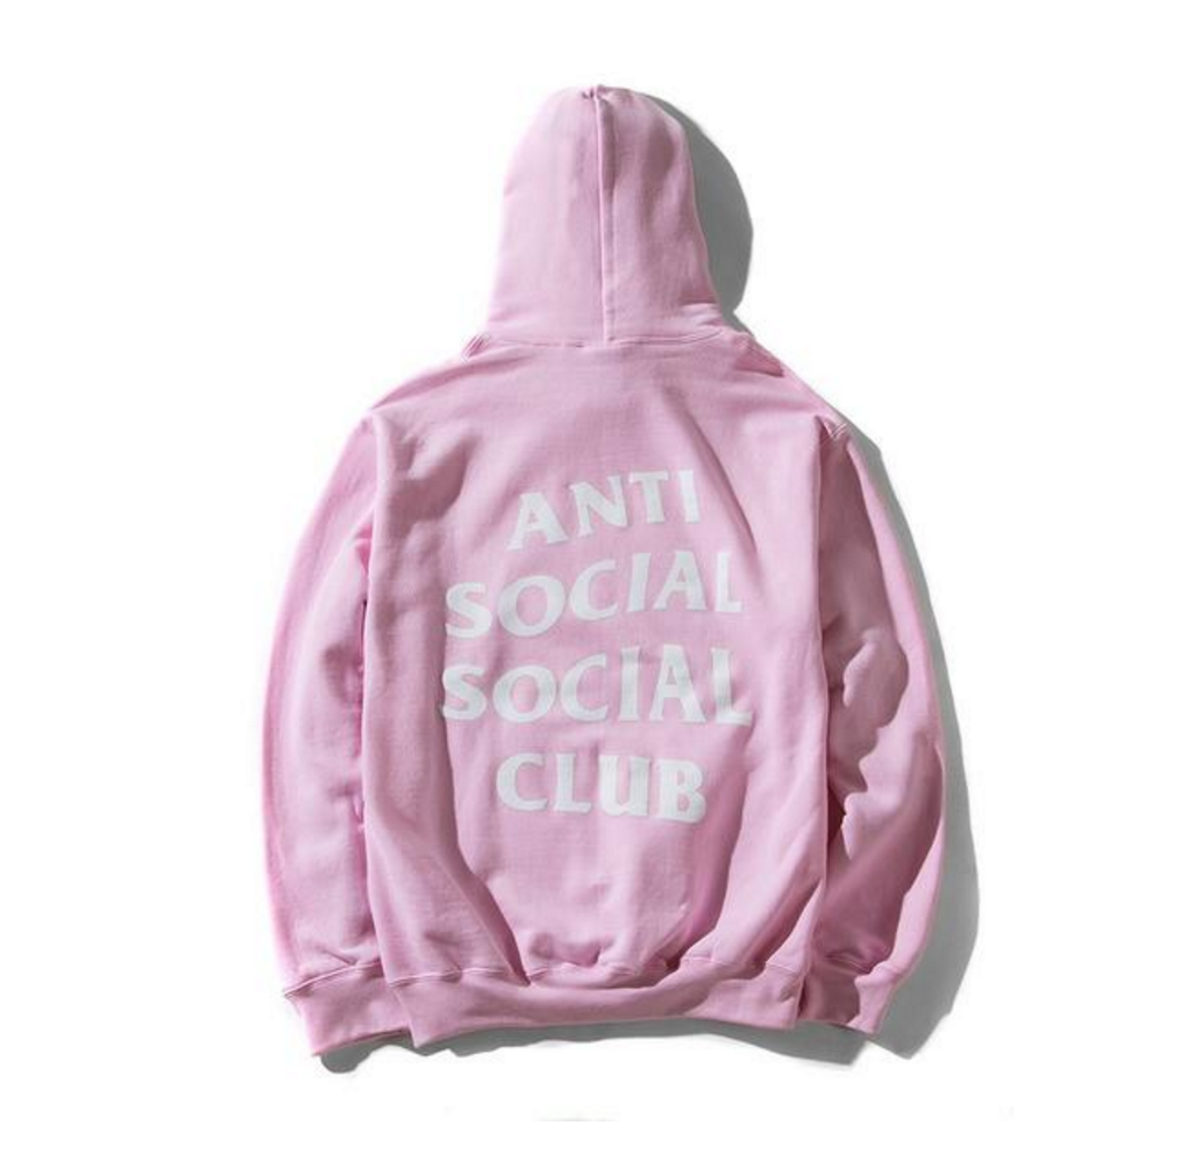 Antisocial Social Club Assc Know You Better Pink Hoodie Size L Zims Jaket The Doctor Black